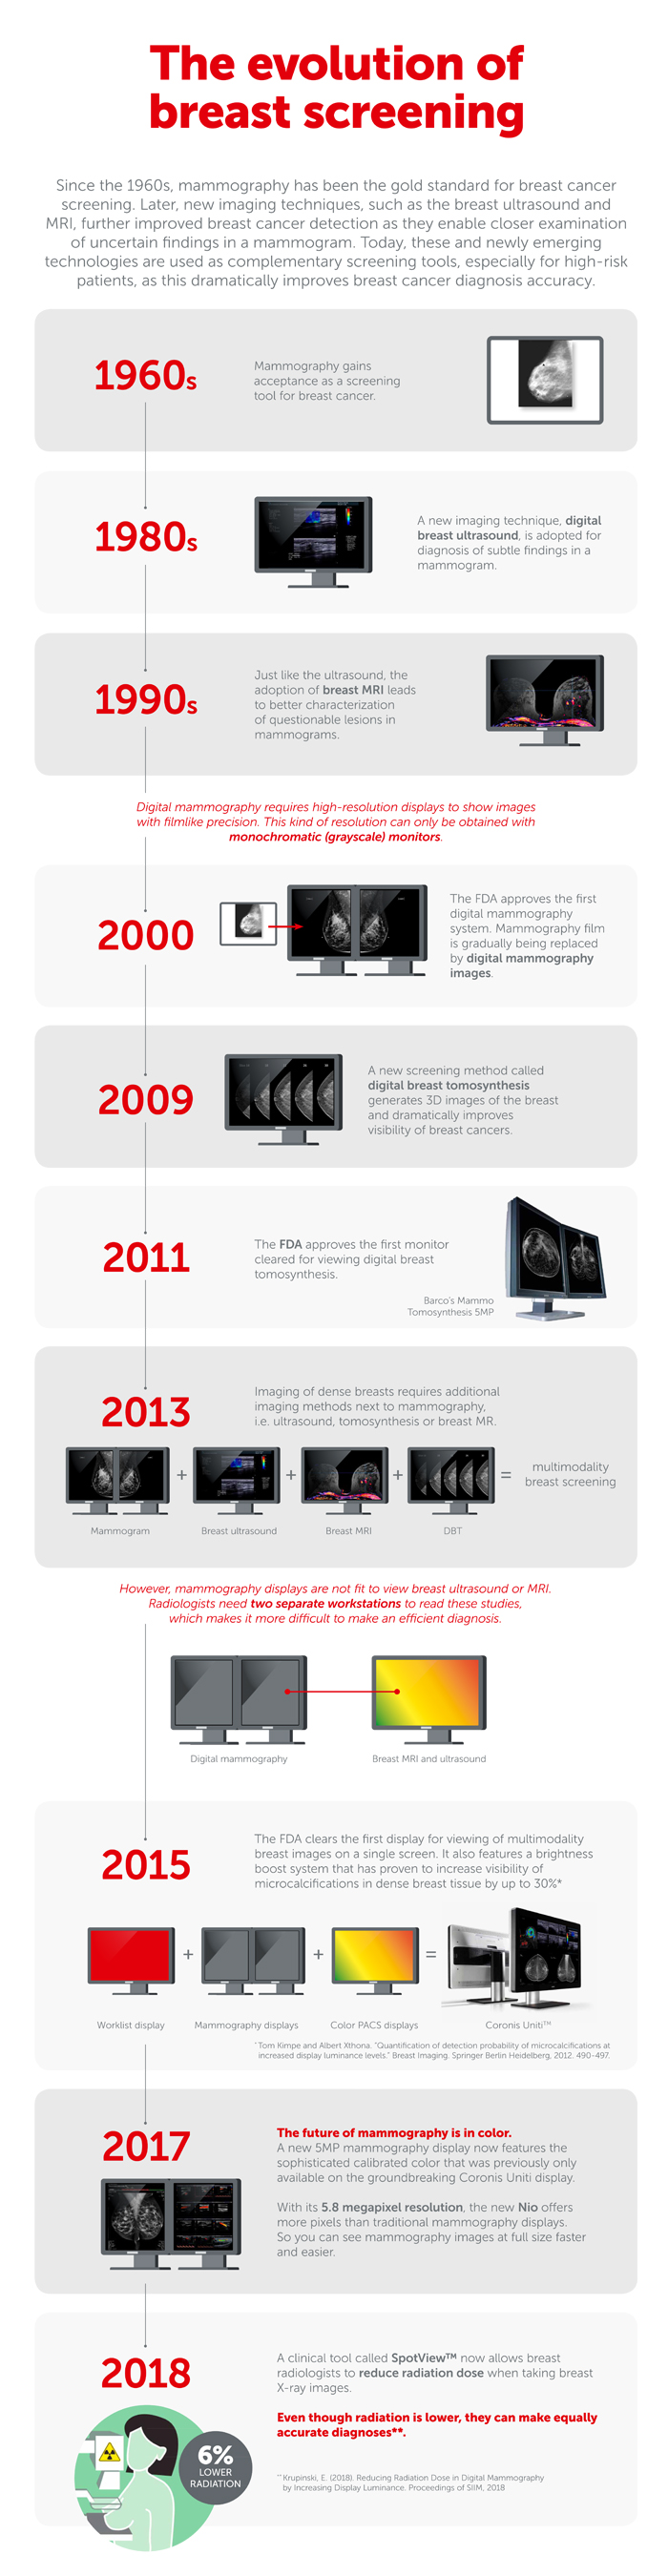 The evolution of breast screening - infographic by Barco